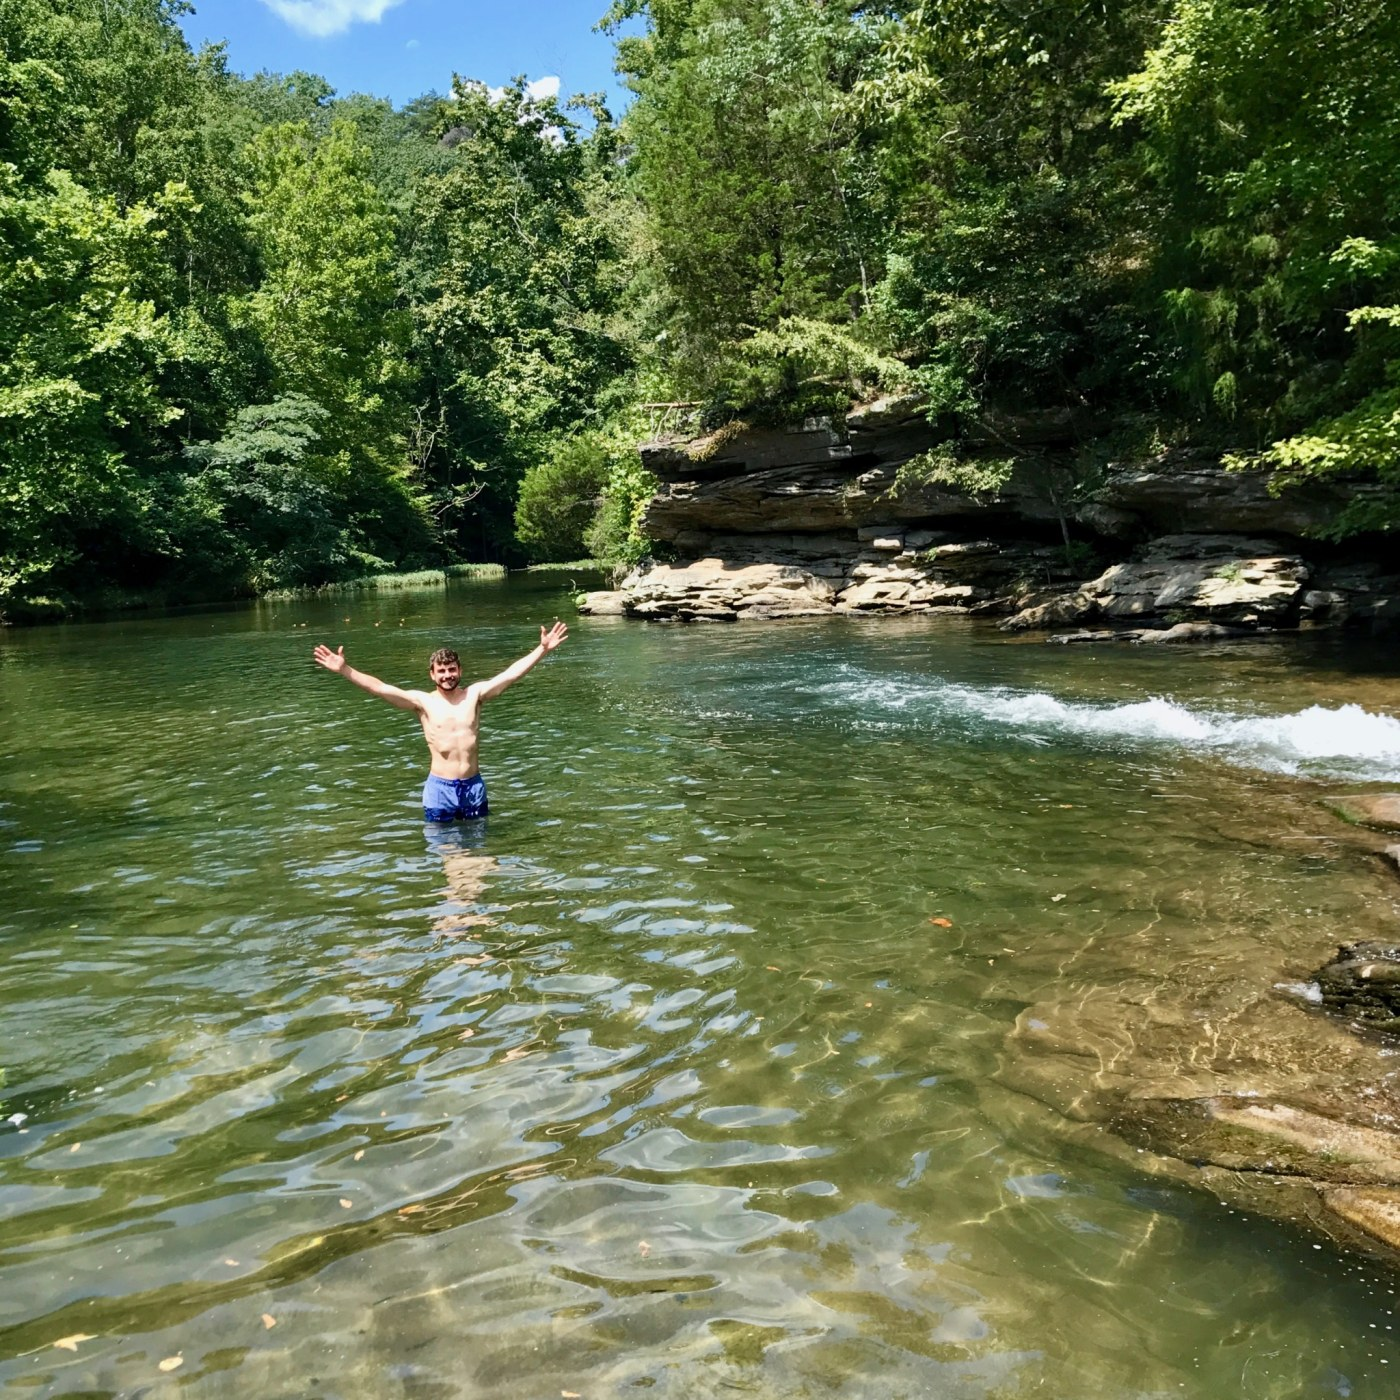 If traveling is out of the question, head over to Turkey Creek Nature Preserve in Pinson, Ala. for some fly fishing, hiking and swimming (Brr.) Photo by Christine Hull